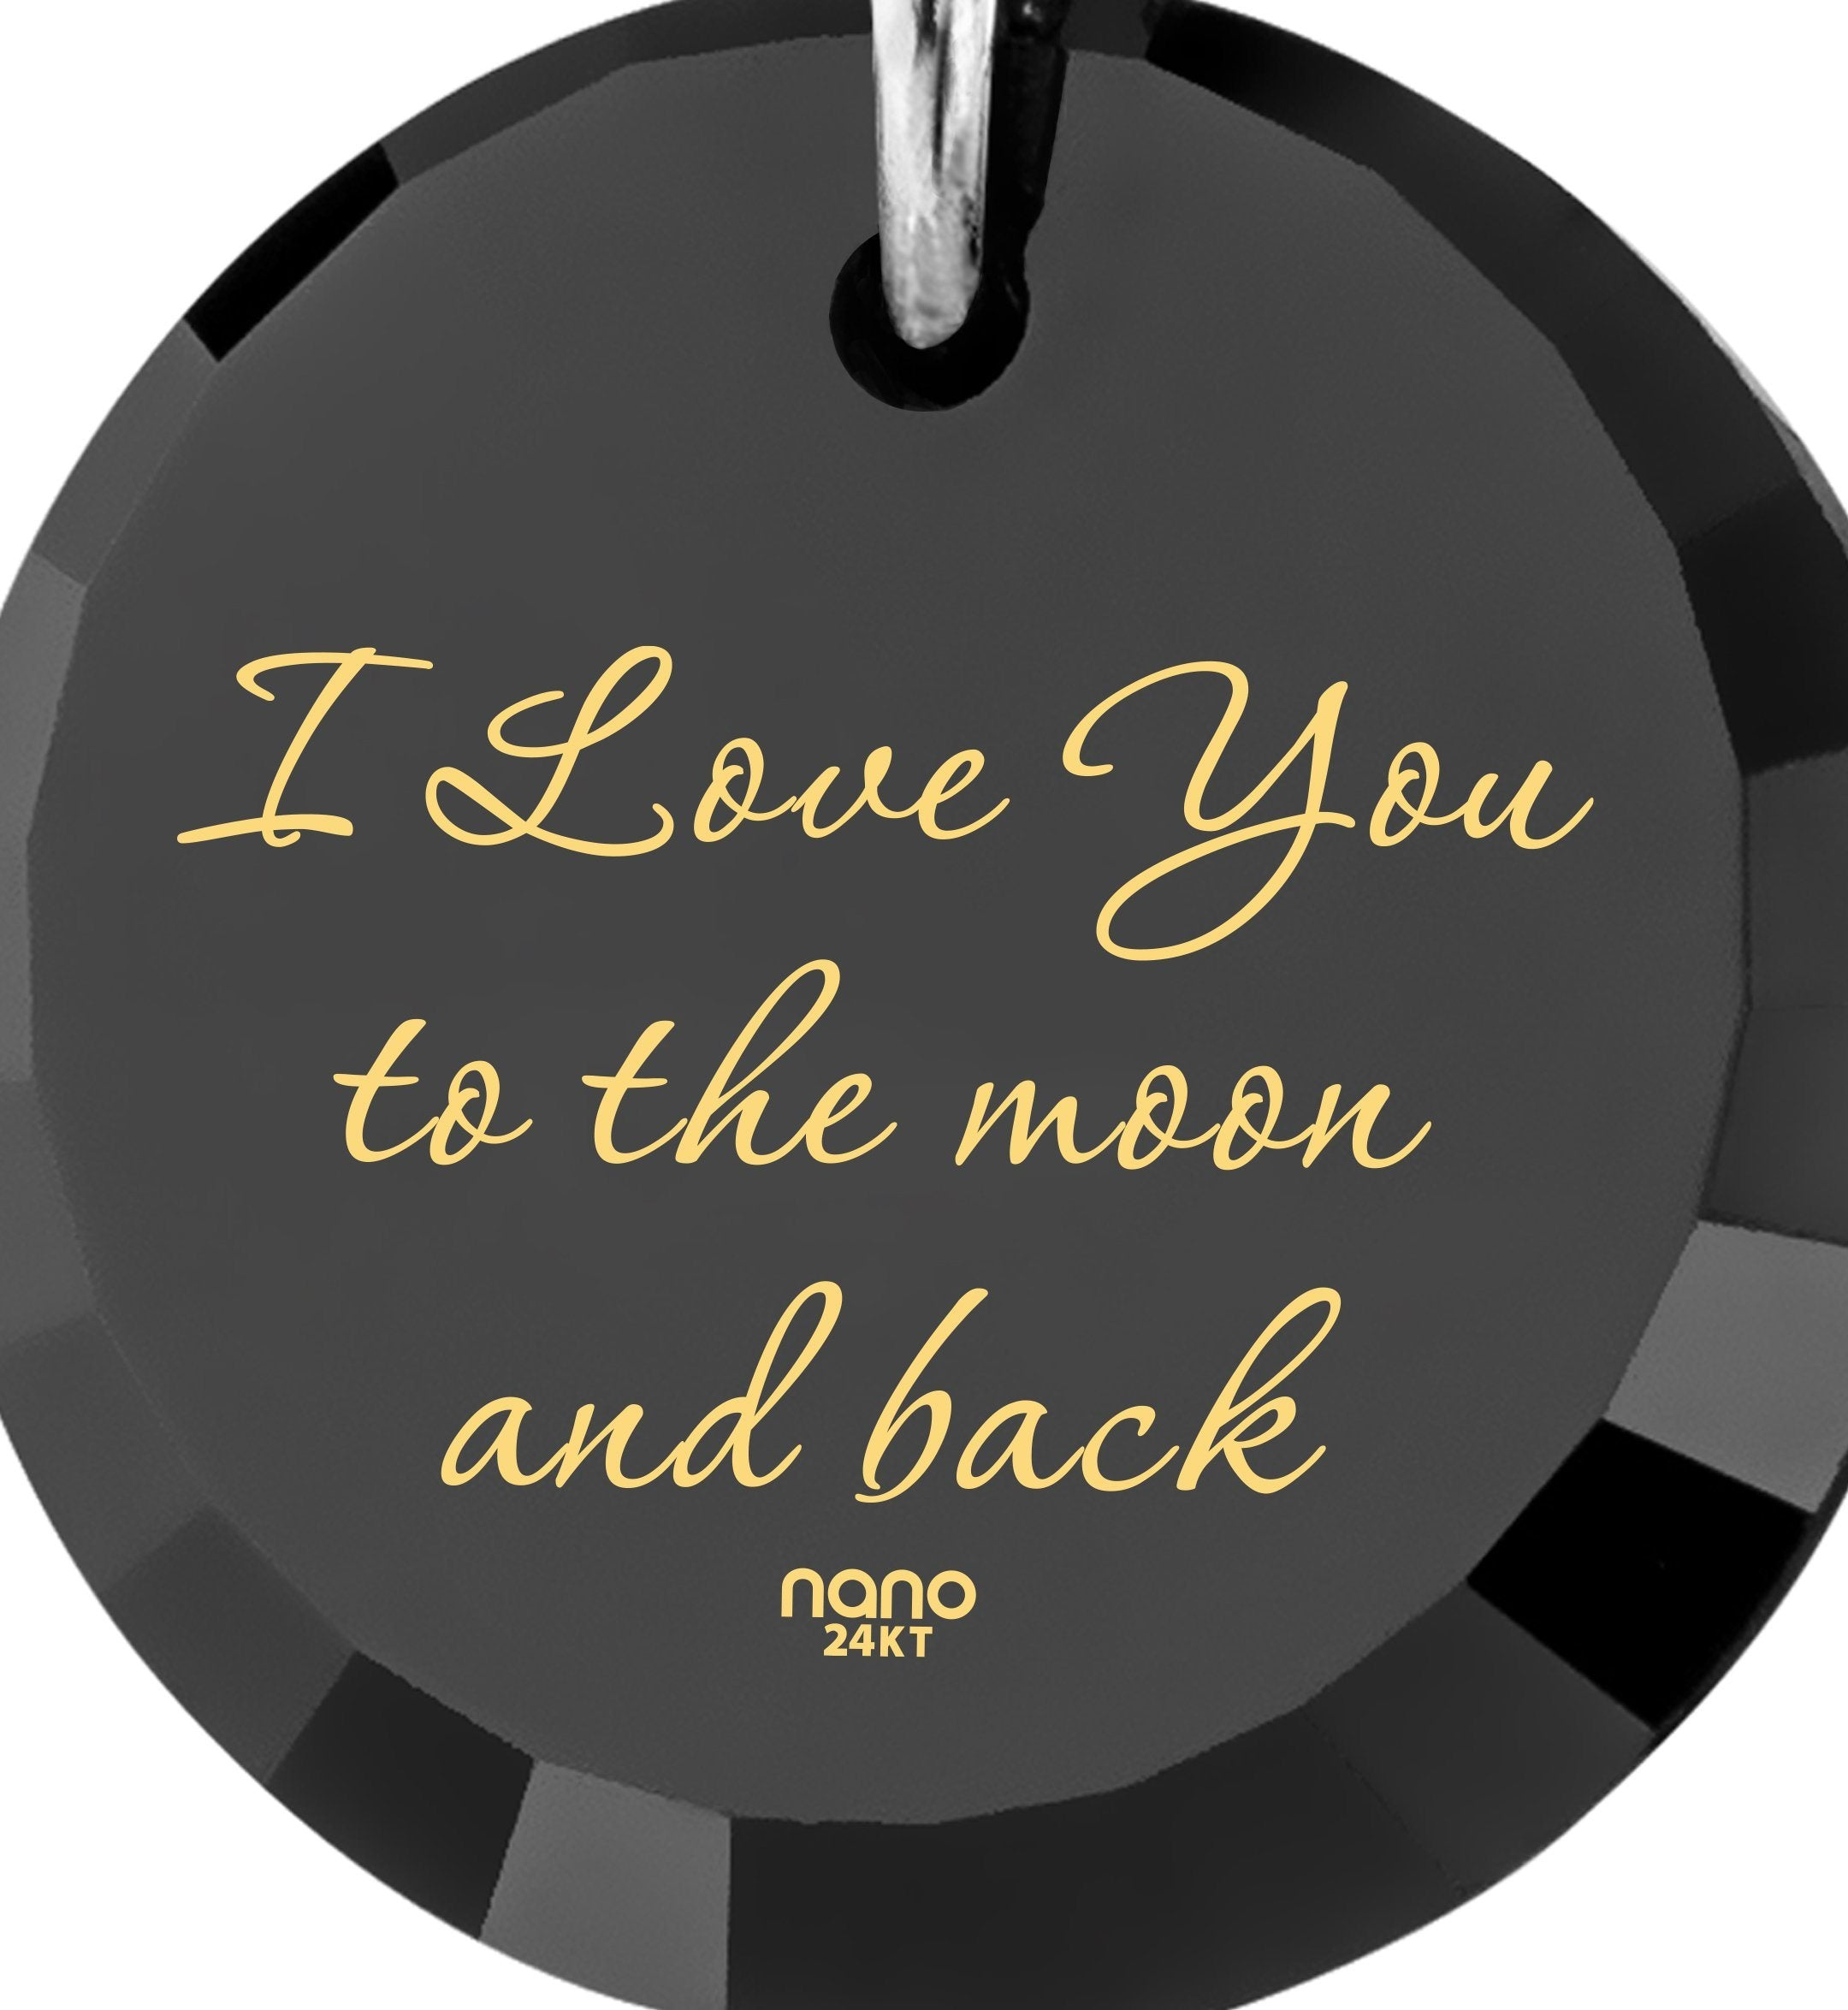 Love You to the Moon and Back Gifts: What to Get Girlfriend for Birthday, Christmas Presents for Her, Nano Jewelry